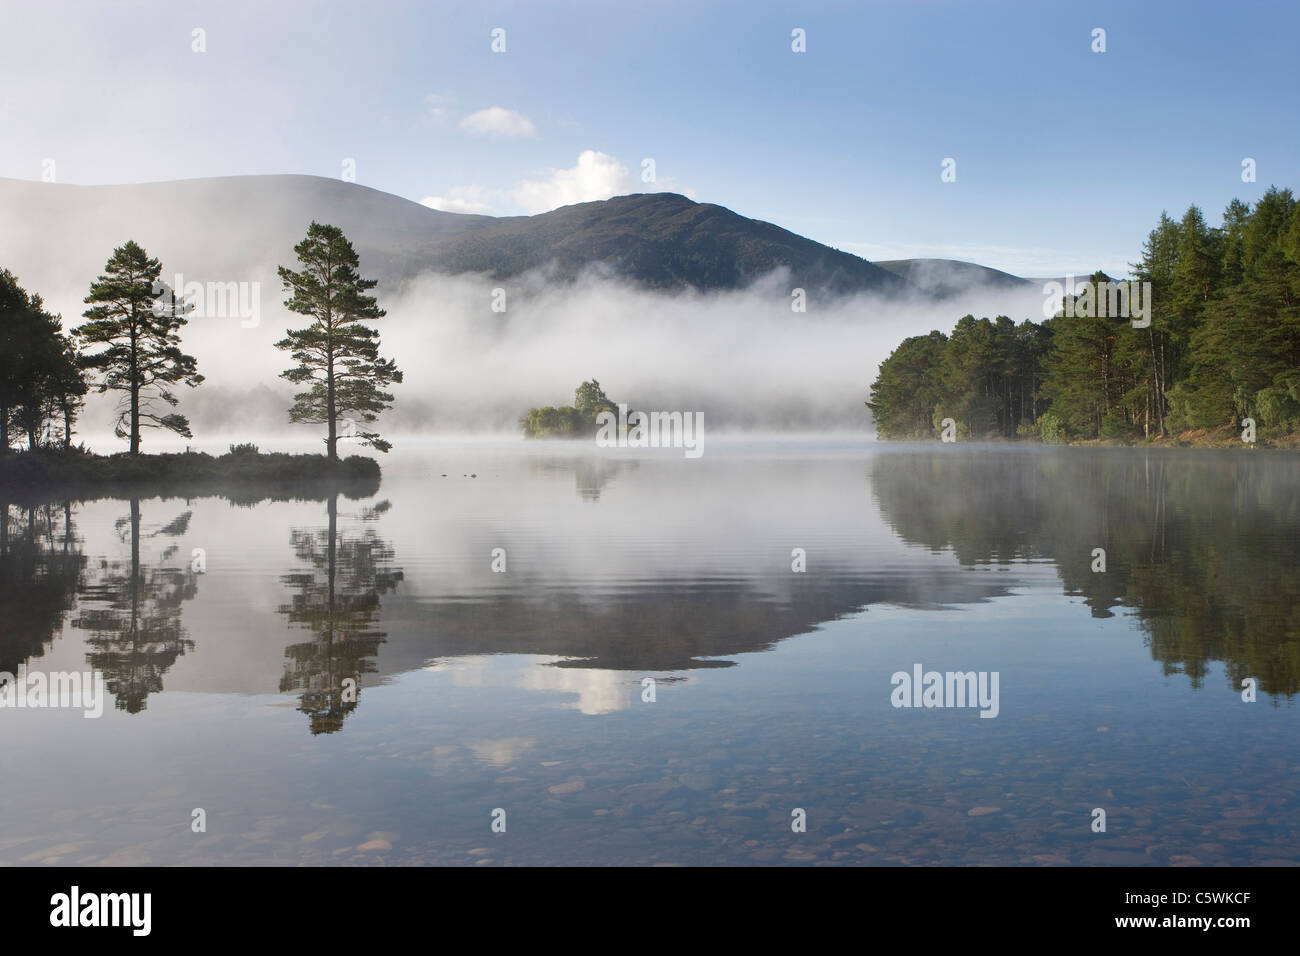 Morning at Loch an Eilien, Rothiemurchus Forest, Cairngorms National Park, Scotland, Great Britain. - Stock Image